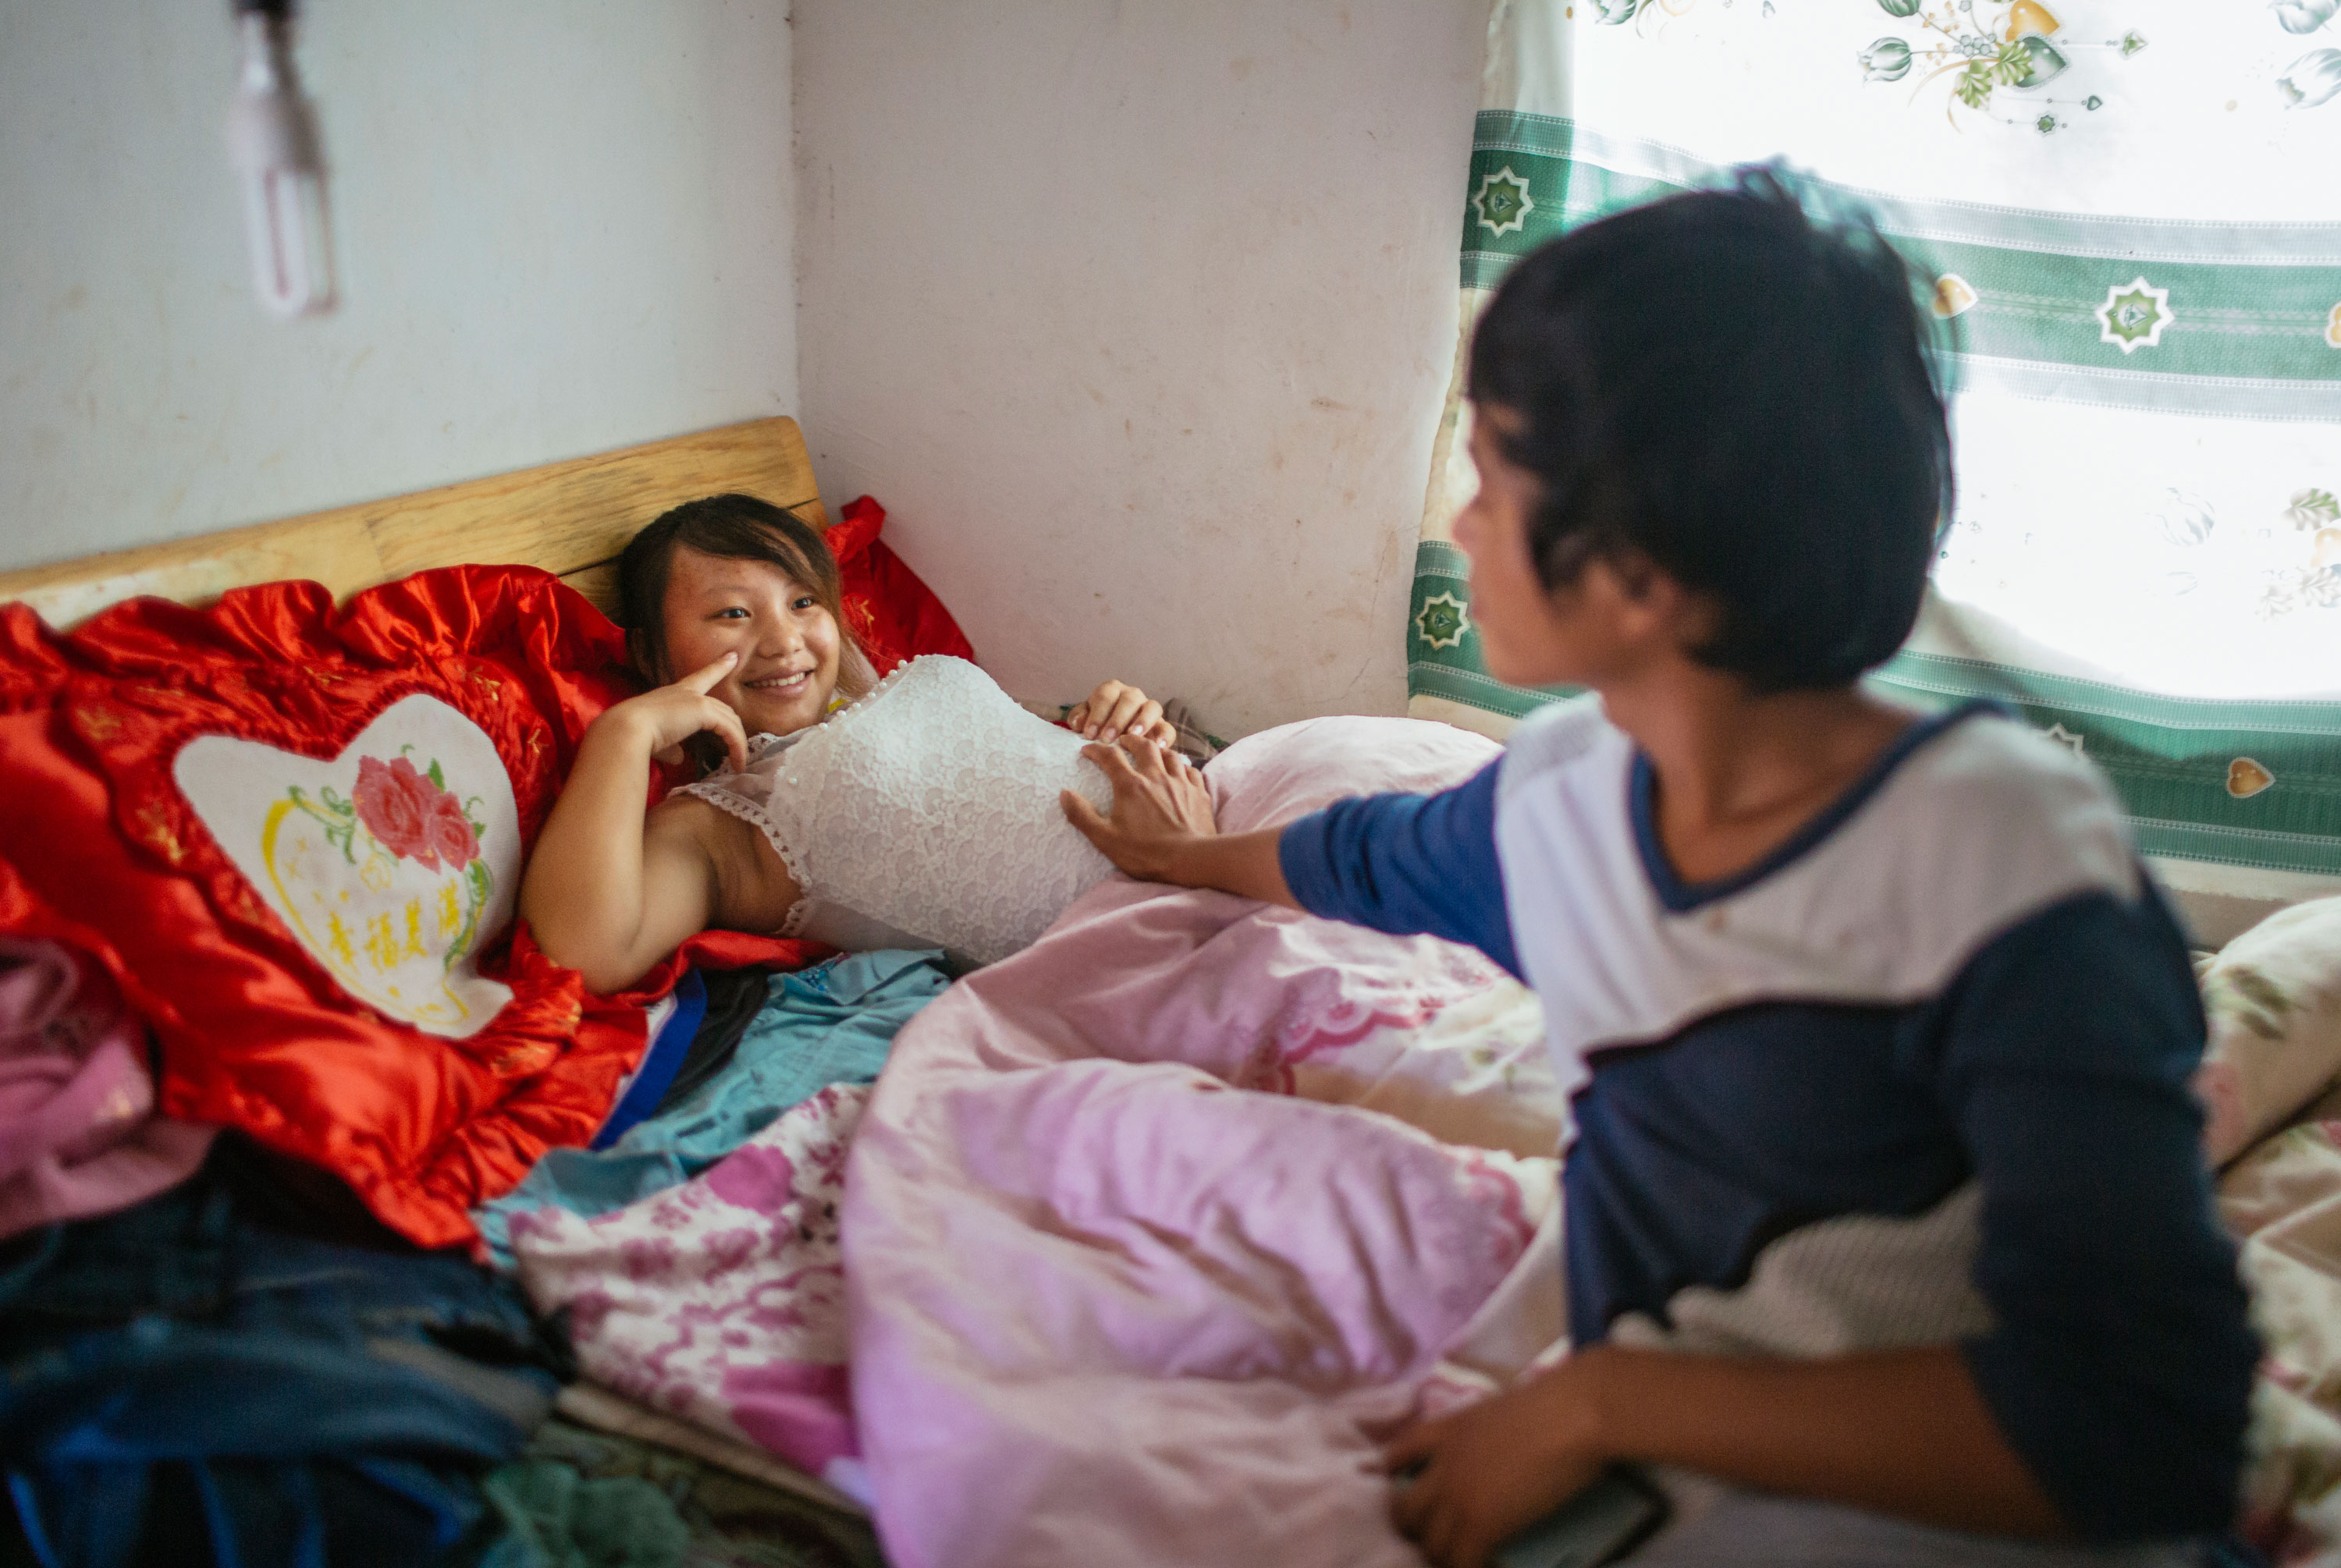 Wen touches his wife Jie's stomach to feel ther baby inside. He is 18 and she is 13 years old. They live together in Tangzibian village, Mengla county.